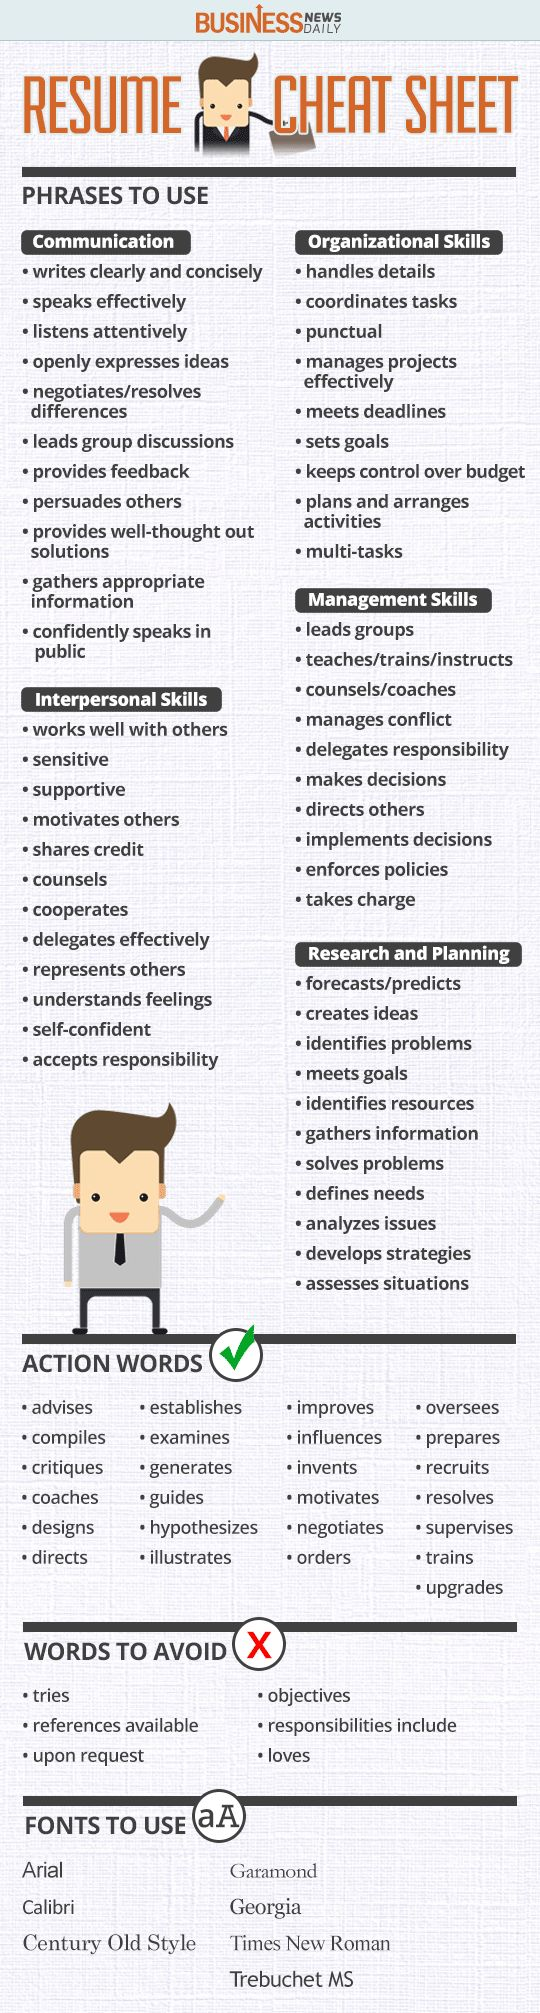 Opposenewapstandardsus  Splendid  Ideas About Resume On Pinterest  Cv Format Resume Cv And  With Marvelous Resume Cheat Sheet Infographic Andrews Almost Done With A Complete Unit On Employment Which With Appealing Download A Resume Template Also Bank Teller Duties Resume In Addition Resume For Daycare Teacher And Making The Perfect Resume As Well As Areas Of Expertise On A Resume Additionally Resume Builder Online For Free From Pinterestcom With Opposenewapstandardsus  Marvelous  Ideas About Resume On Pinterest  Cv Format Resume Cv And  With Appealing Resume Cheat Sheet Infographic Andrews Almost Done With A Complete Unit On Employment Which And Splendid Download A Resume Template Also Bank Teller Duties Resume In Addition Resume For Daycare Teacher From Pinterestcom